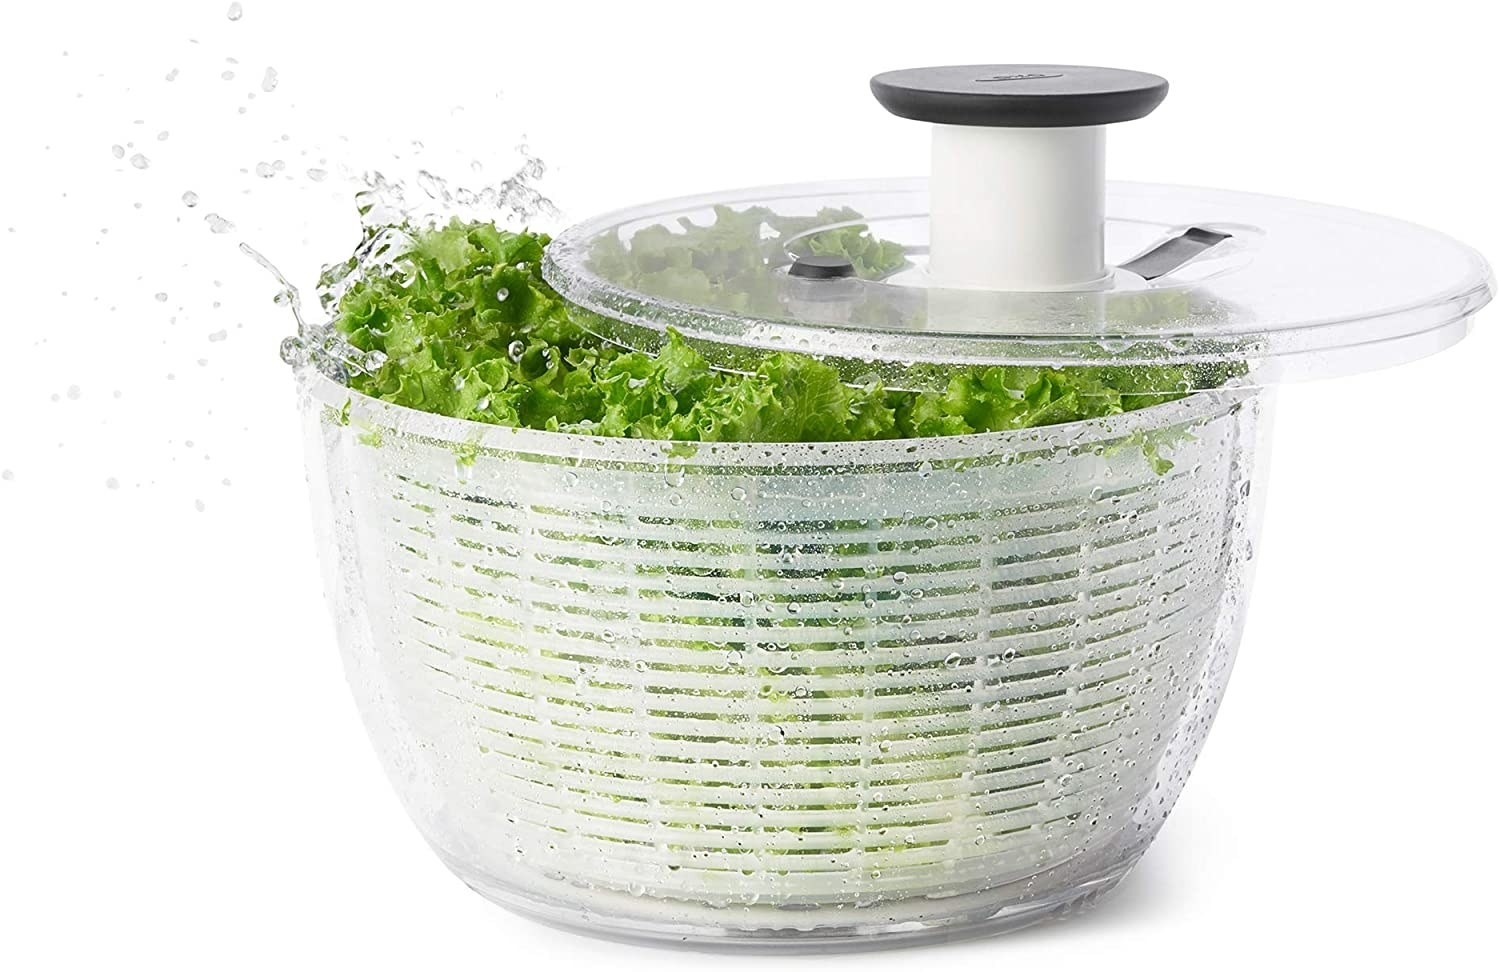 A plastic salad spinner full of lettuce.